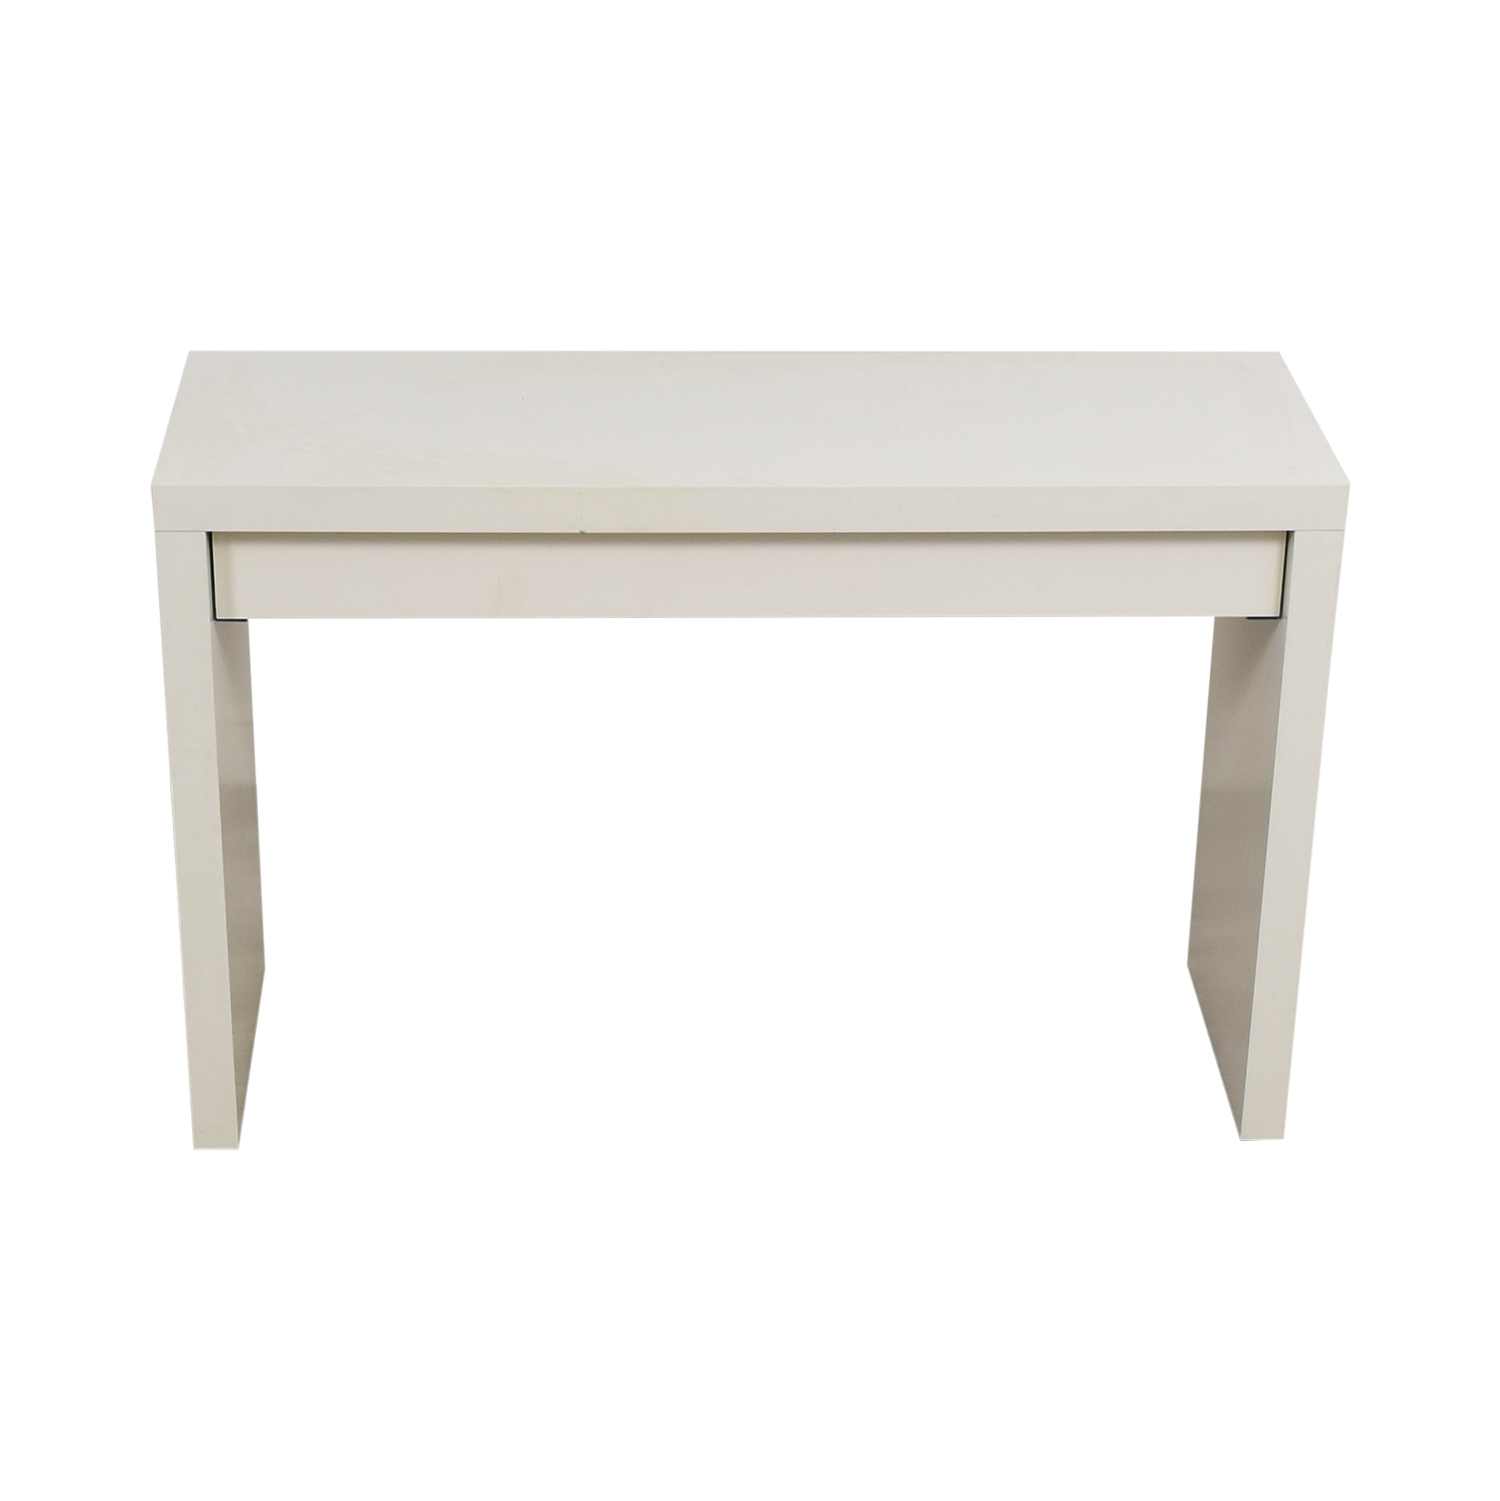 Beau 54% OFF   IKEA IKEA Malm White Single Drawer Narrow Desk Or Table / Tables